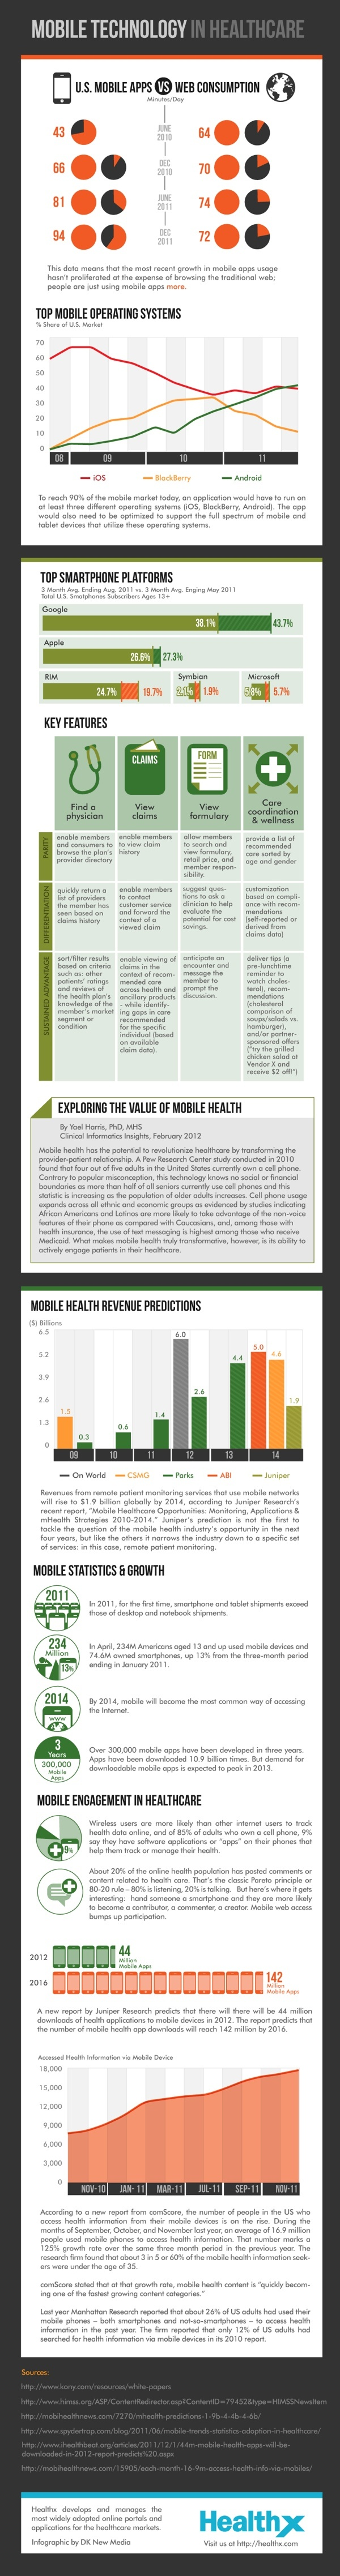 The following infographic from healthcare solutions firm Healthx highlights the change that smartphones and tablets have had on the health industry. Results show that there will be 44 million m-health app downloads by the end of 2012, which will rise to 142 million by 2016.  Key highlights of the infographic include:  Top Mobile Operating Systems Top SmartPhone Platforms mHealth Revenue Predictions Mobile Stats